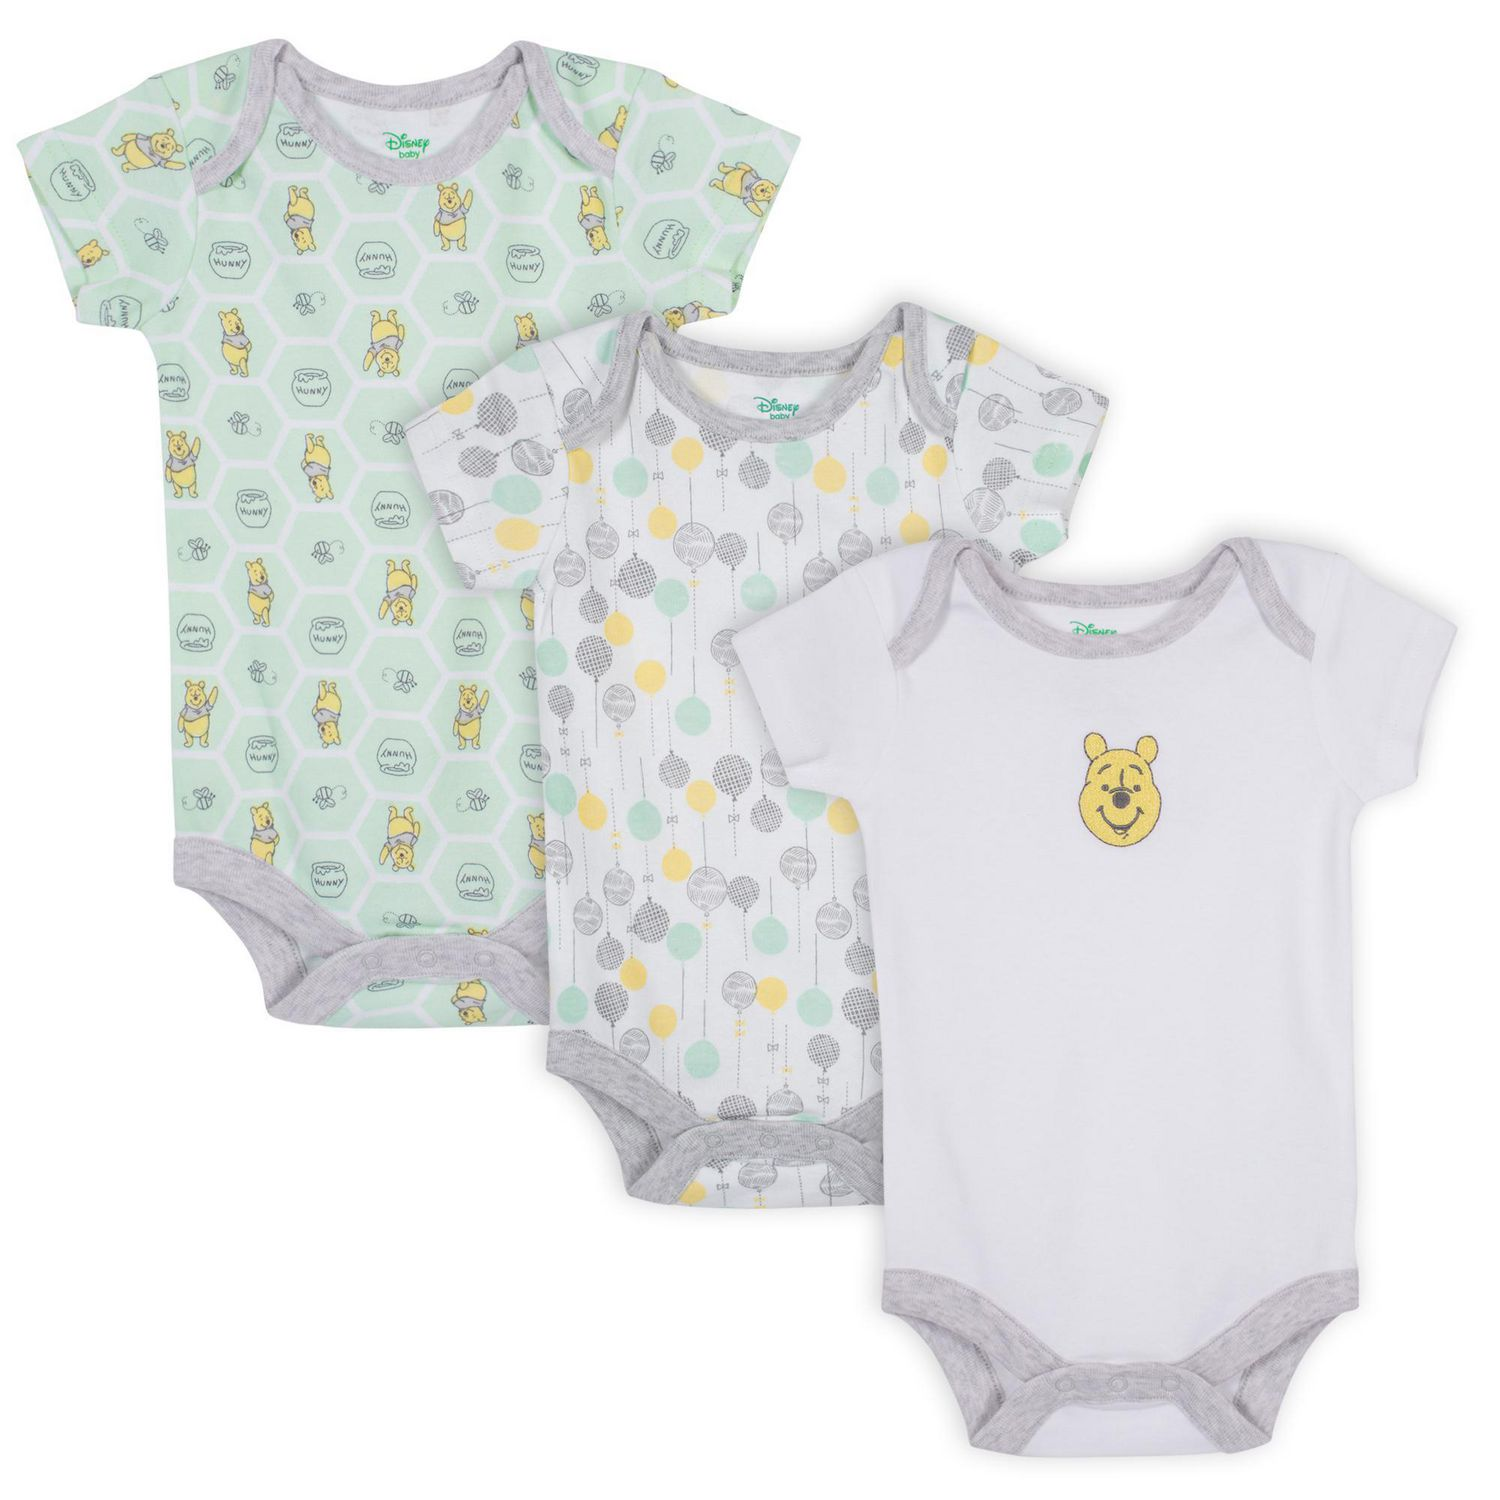 3-Pack Care Unisex Baby Bodysuit Sleeveless Exclusive